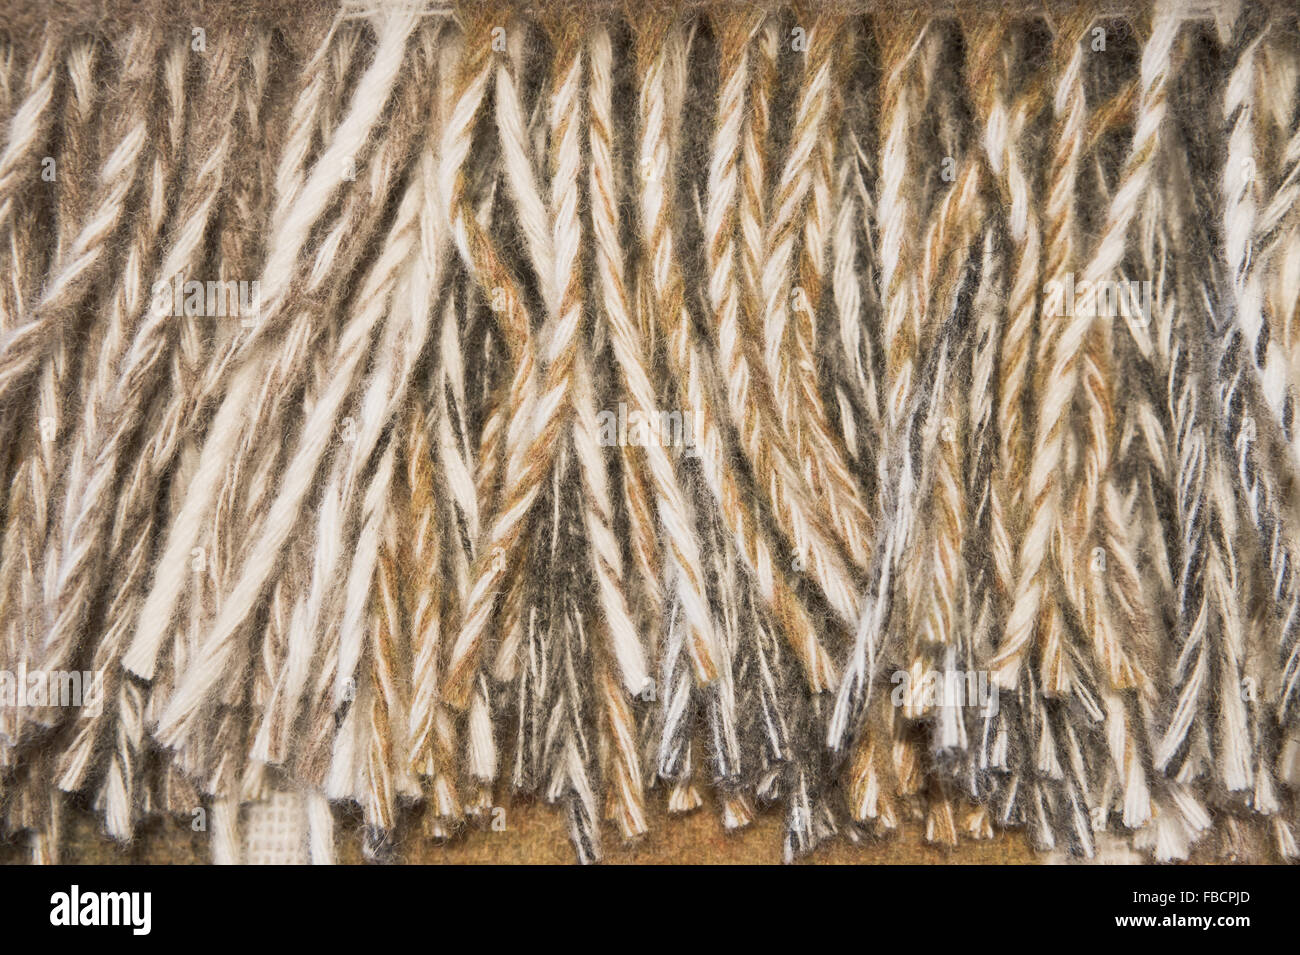 Part of the fringe of a wool blanket - Stock Image